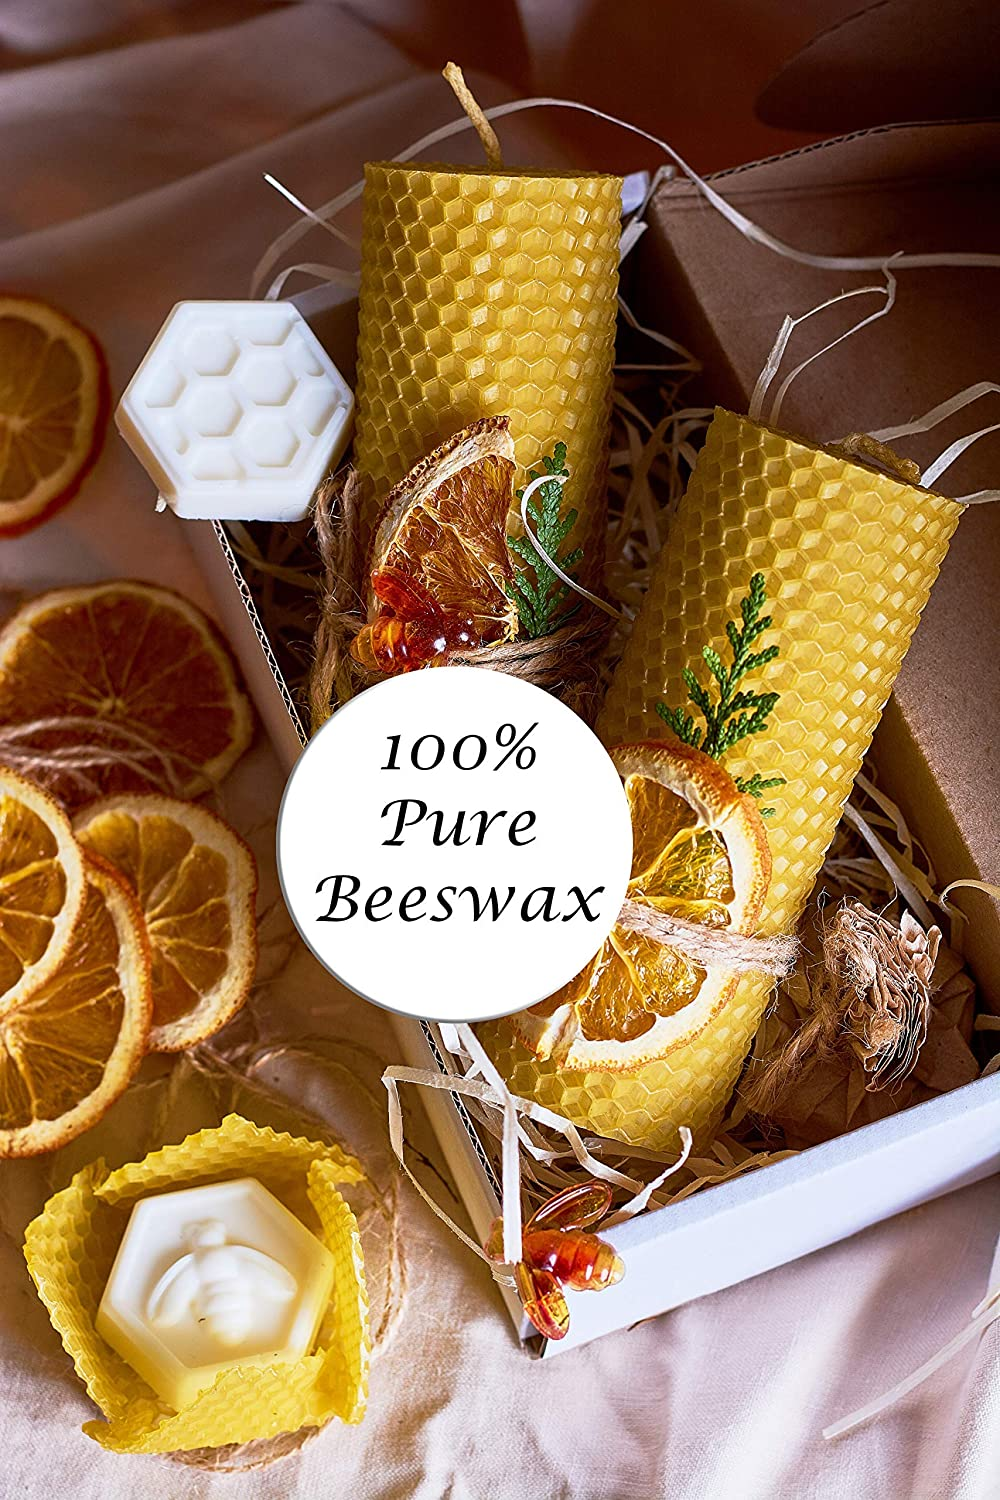 and 2 Shea Butter Soaps for Gift and Home Decor Beeswax Gifts 100/% Beeswax Candles Gift Box Set of 2 Scented Pillar Candles Size 4.3 x 1.5 in 11 x 4 cm